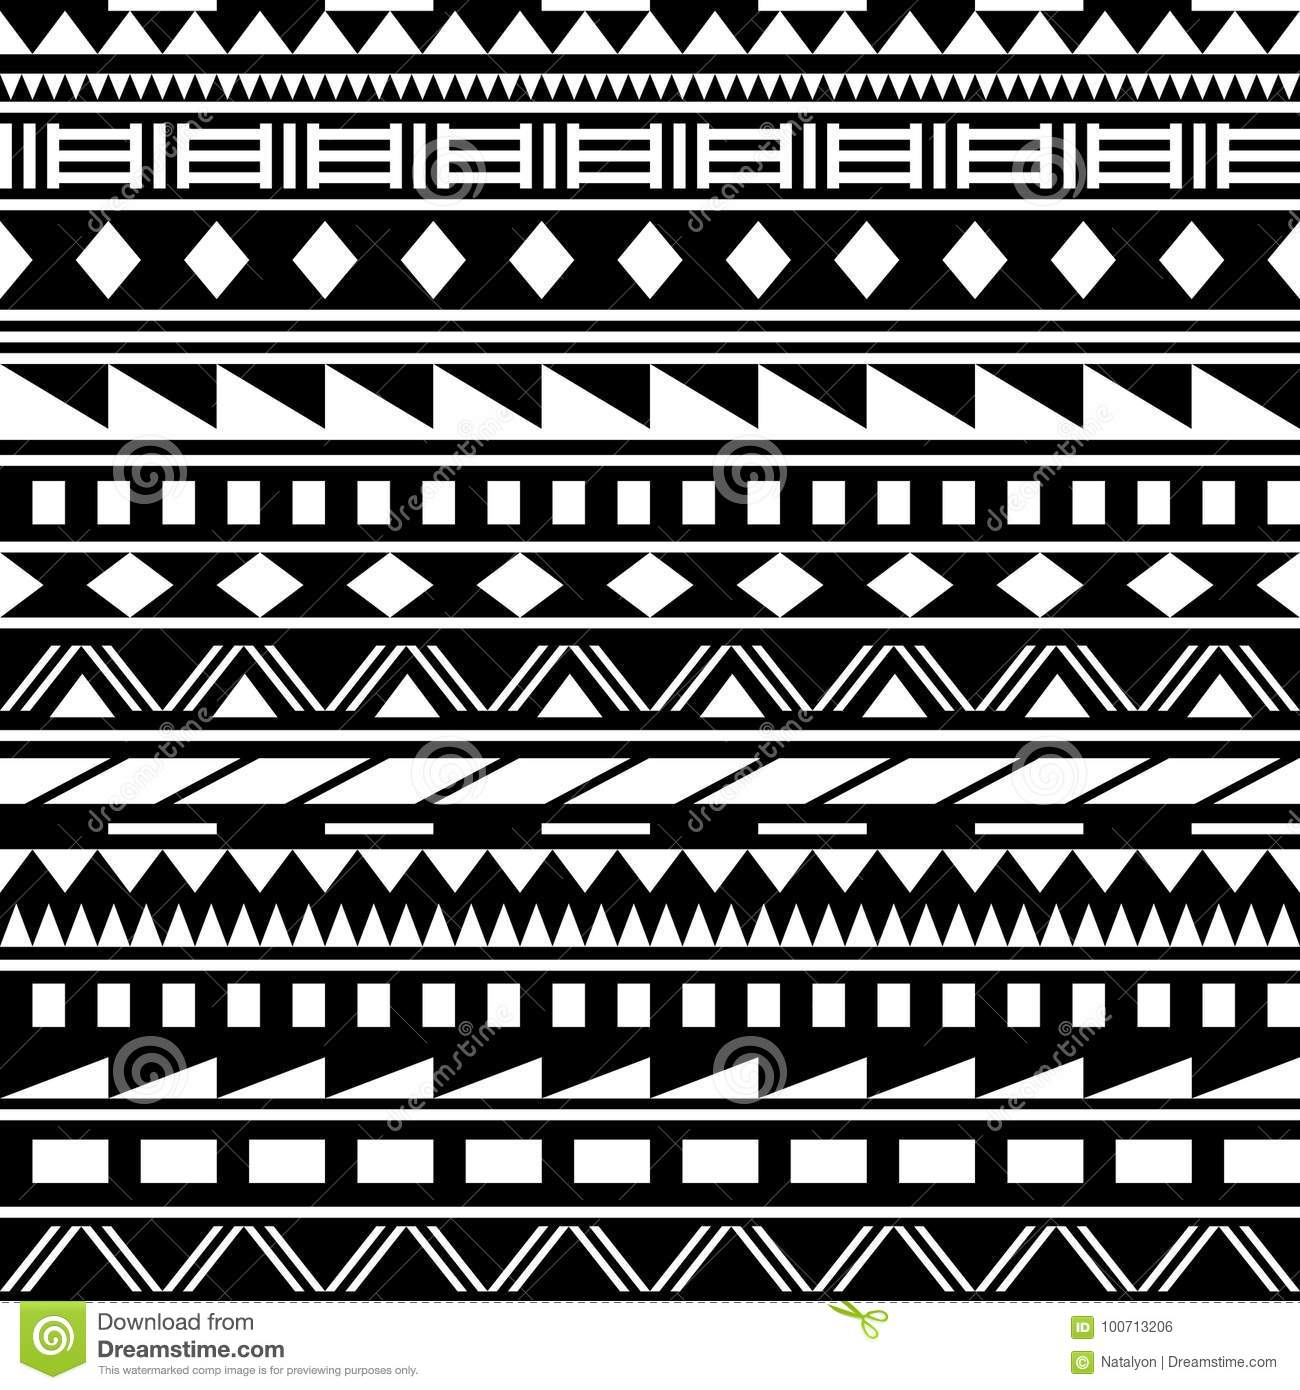 Black and white simple shapes ethnic african striped seamless pattern vector